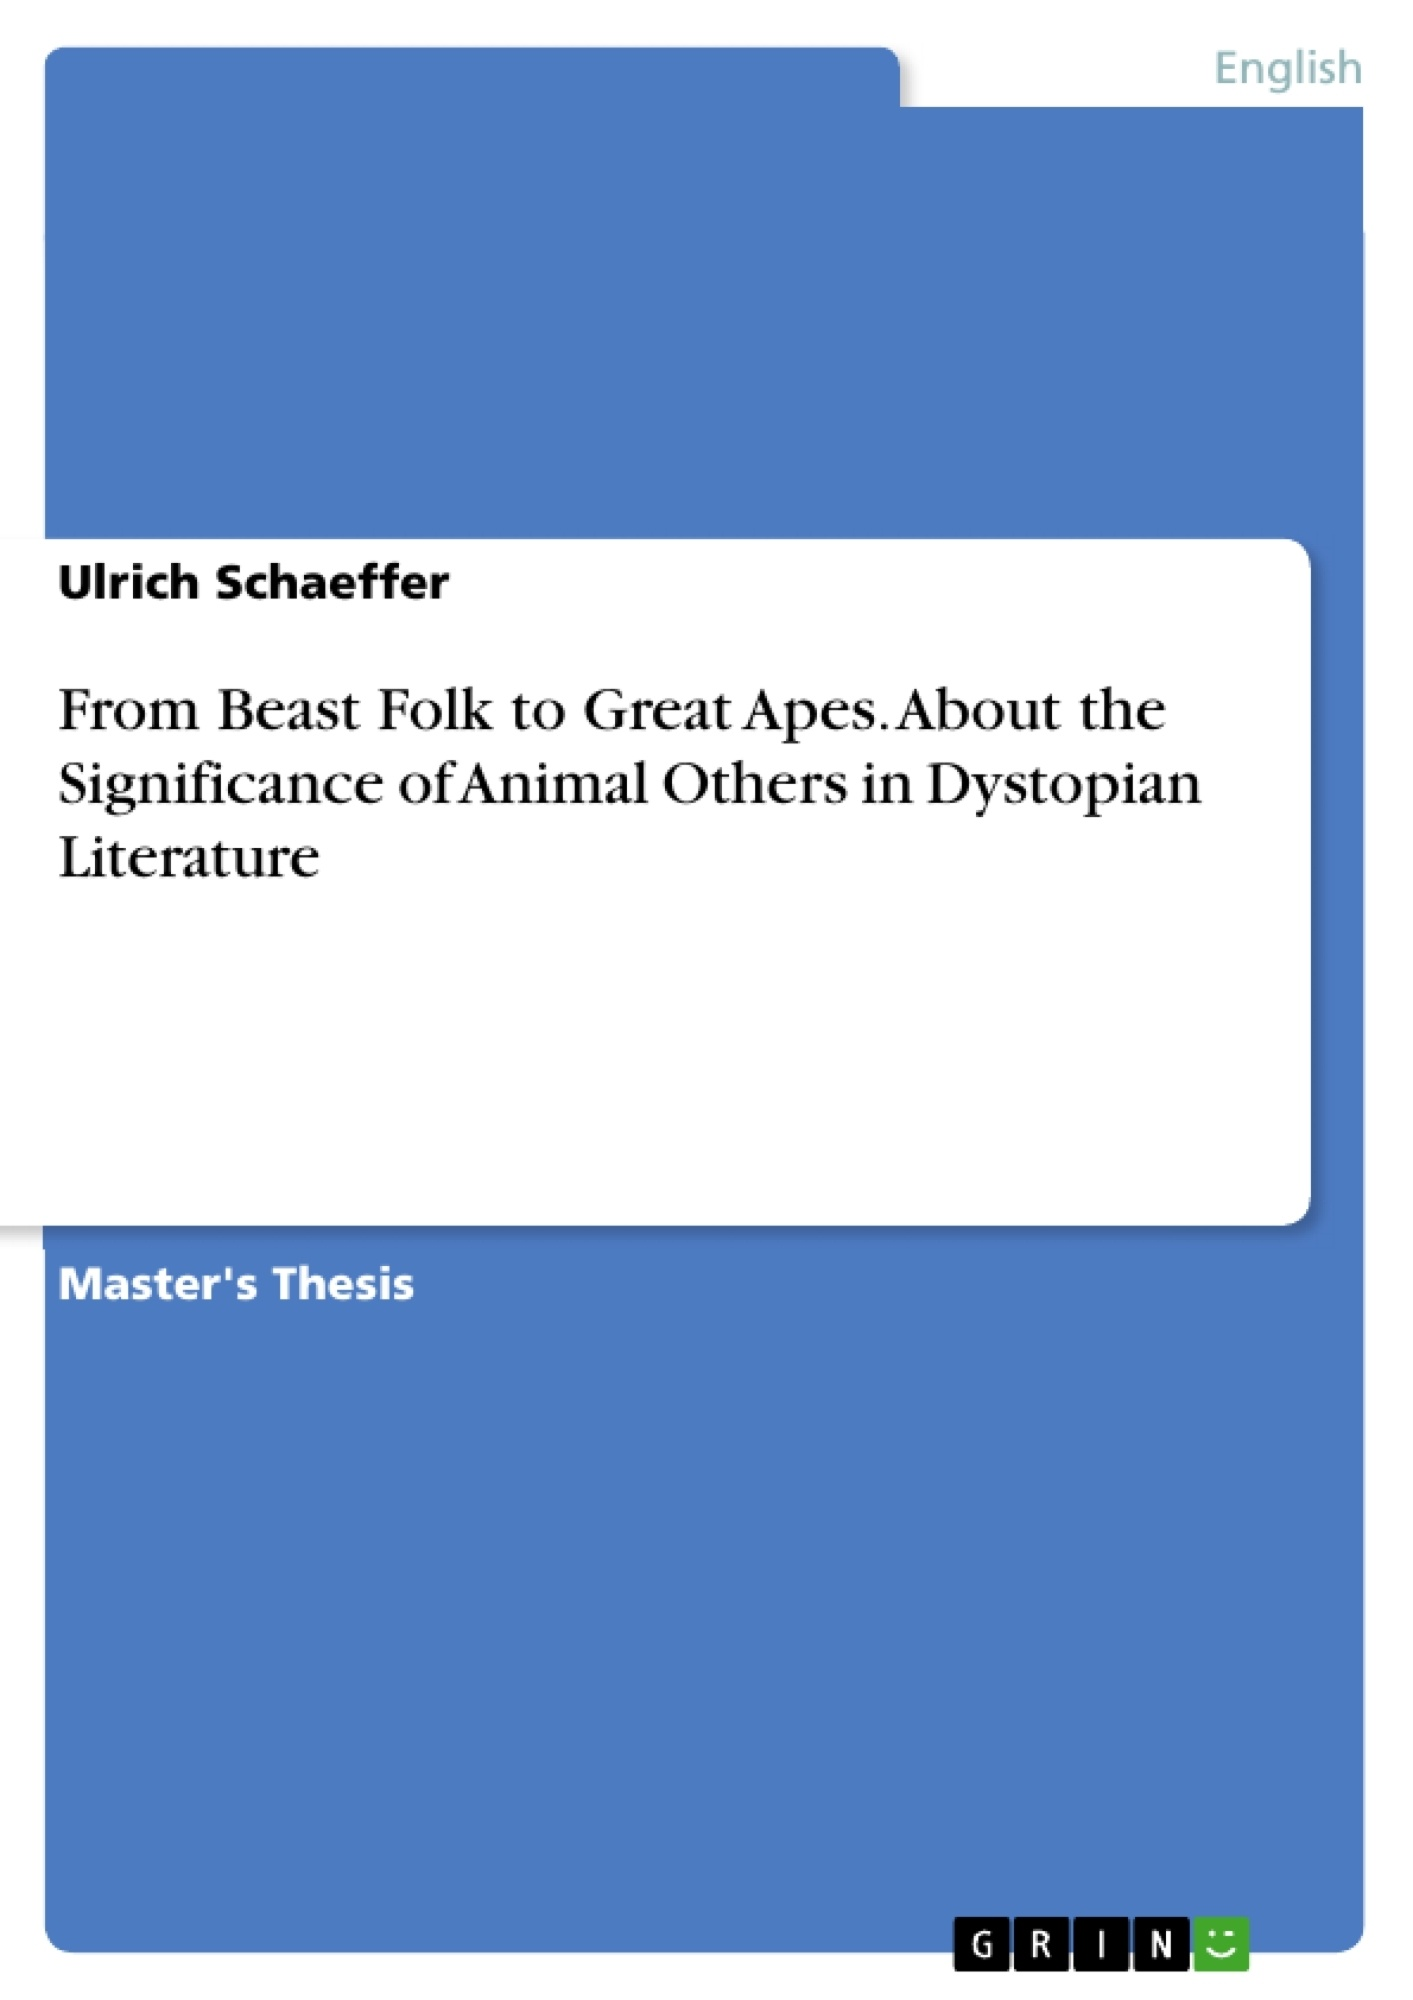 Title: From Beast Folk to Great Apes. About the Significance of Animal Others in Dystopian Literature